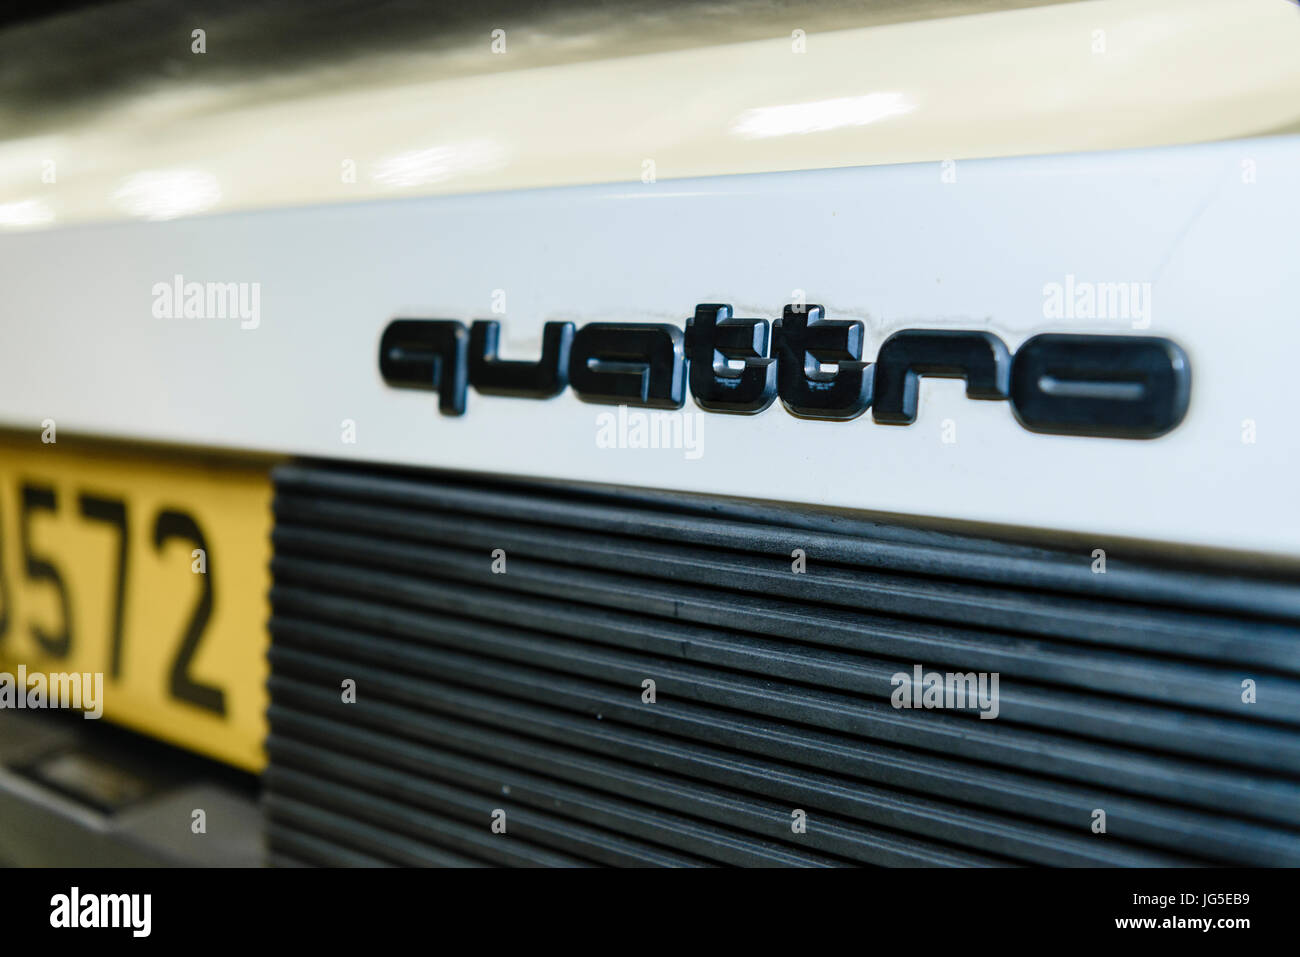 Badge on the boot trunk of an Audi Quattro 4x4 four all wheel drive sports performance car - Stock Image